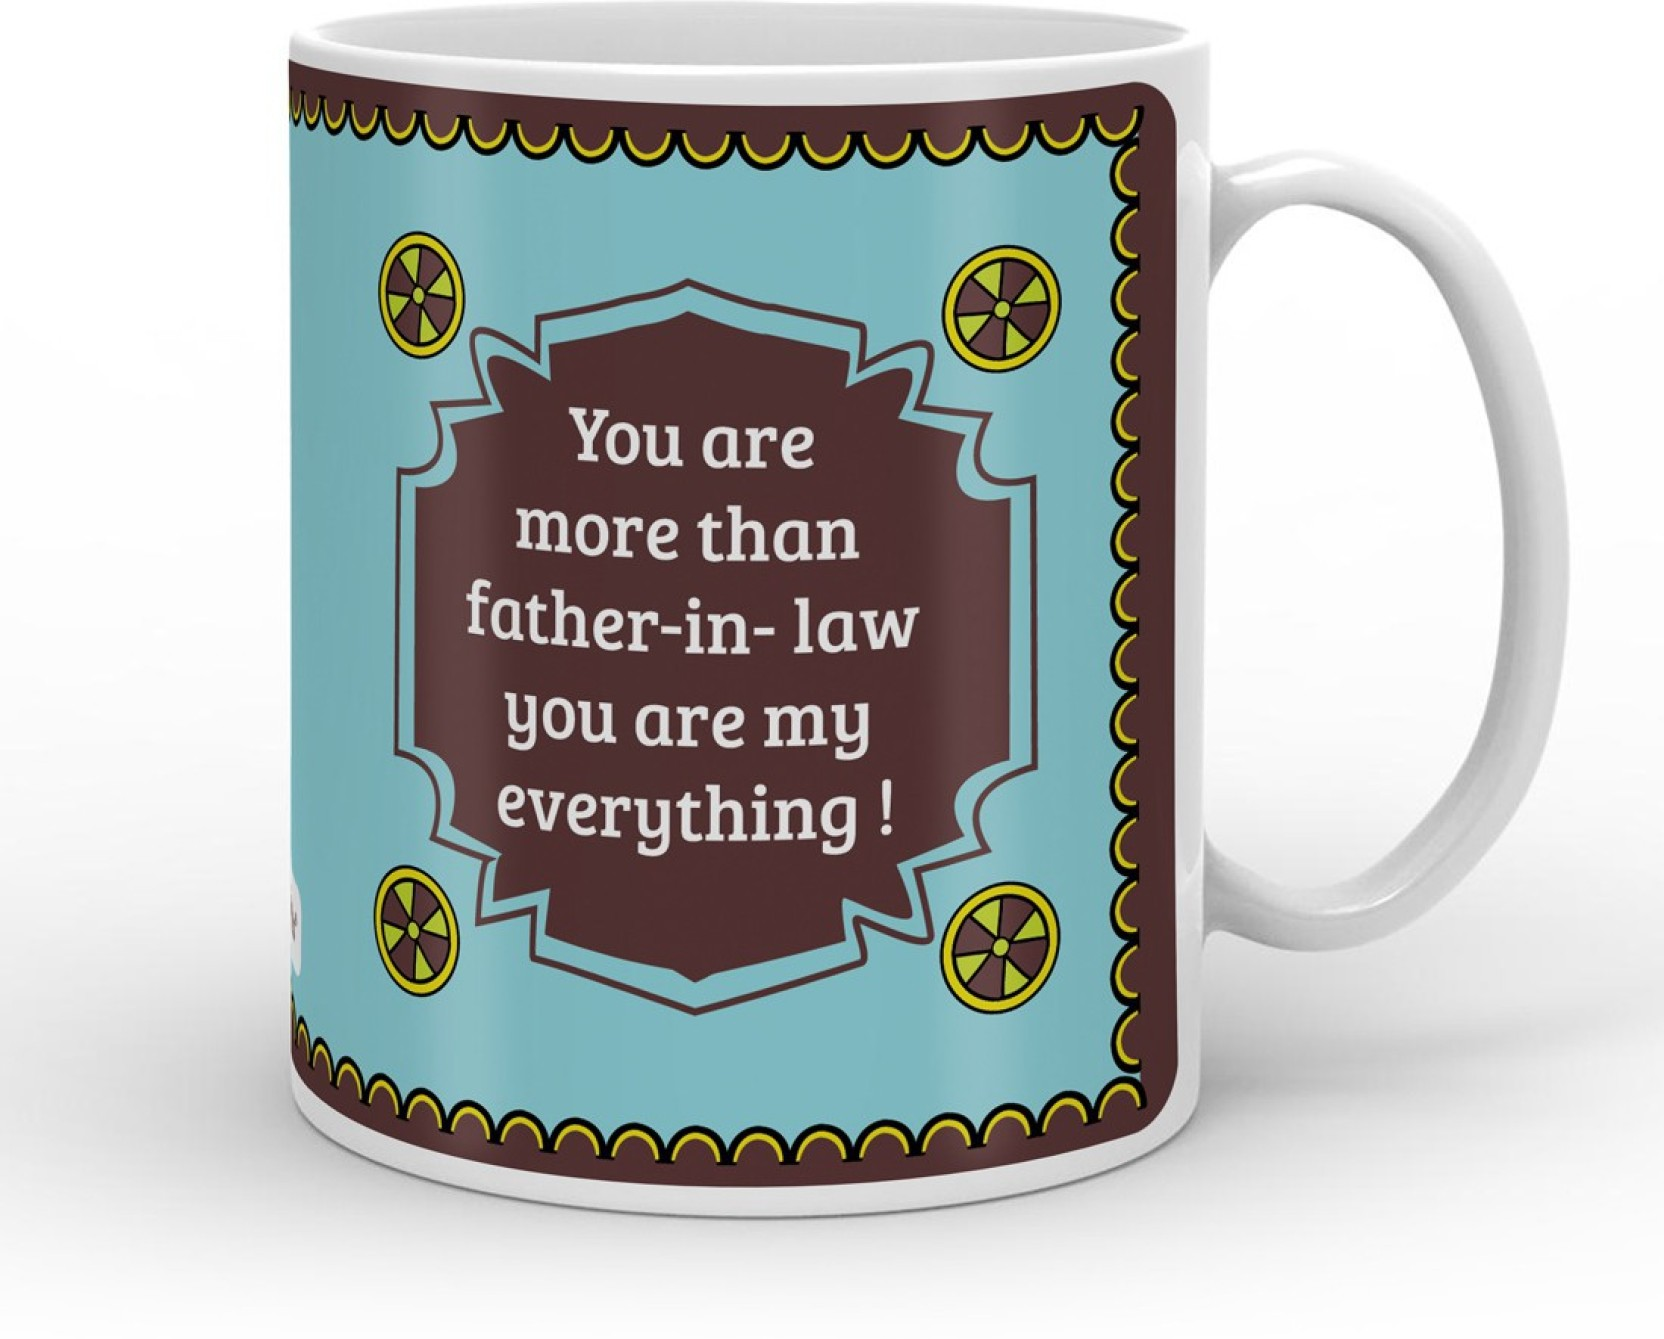 Indigifts Decorative Gift Items For Father In Law Fathers Birthday Dad Papa Day S MUGCRWH01RO11 ILF17011 Ceramic Mug